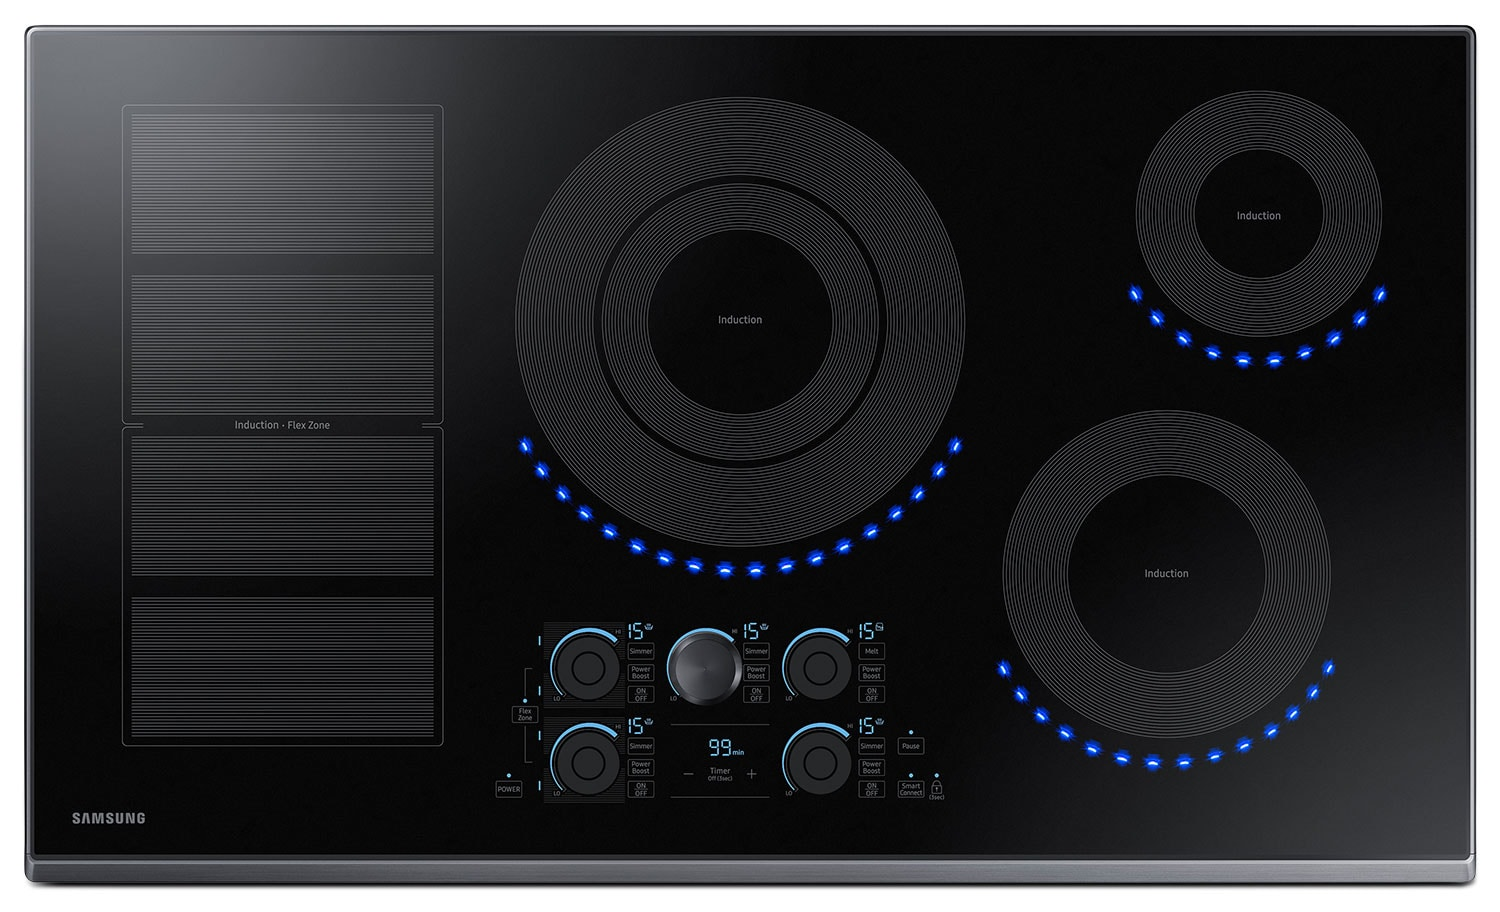 Samsung 36 electric induction cooktop nz36k7880ug aa Samsung induction range